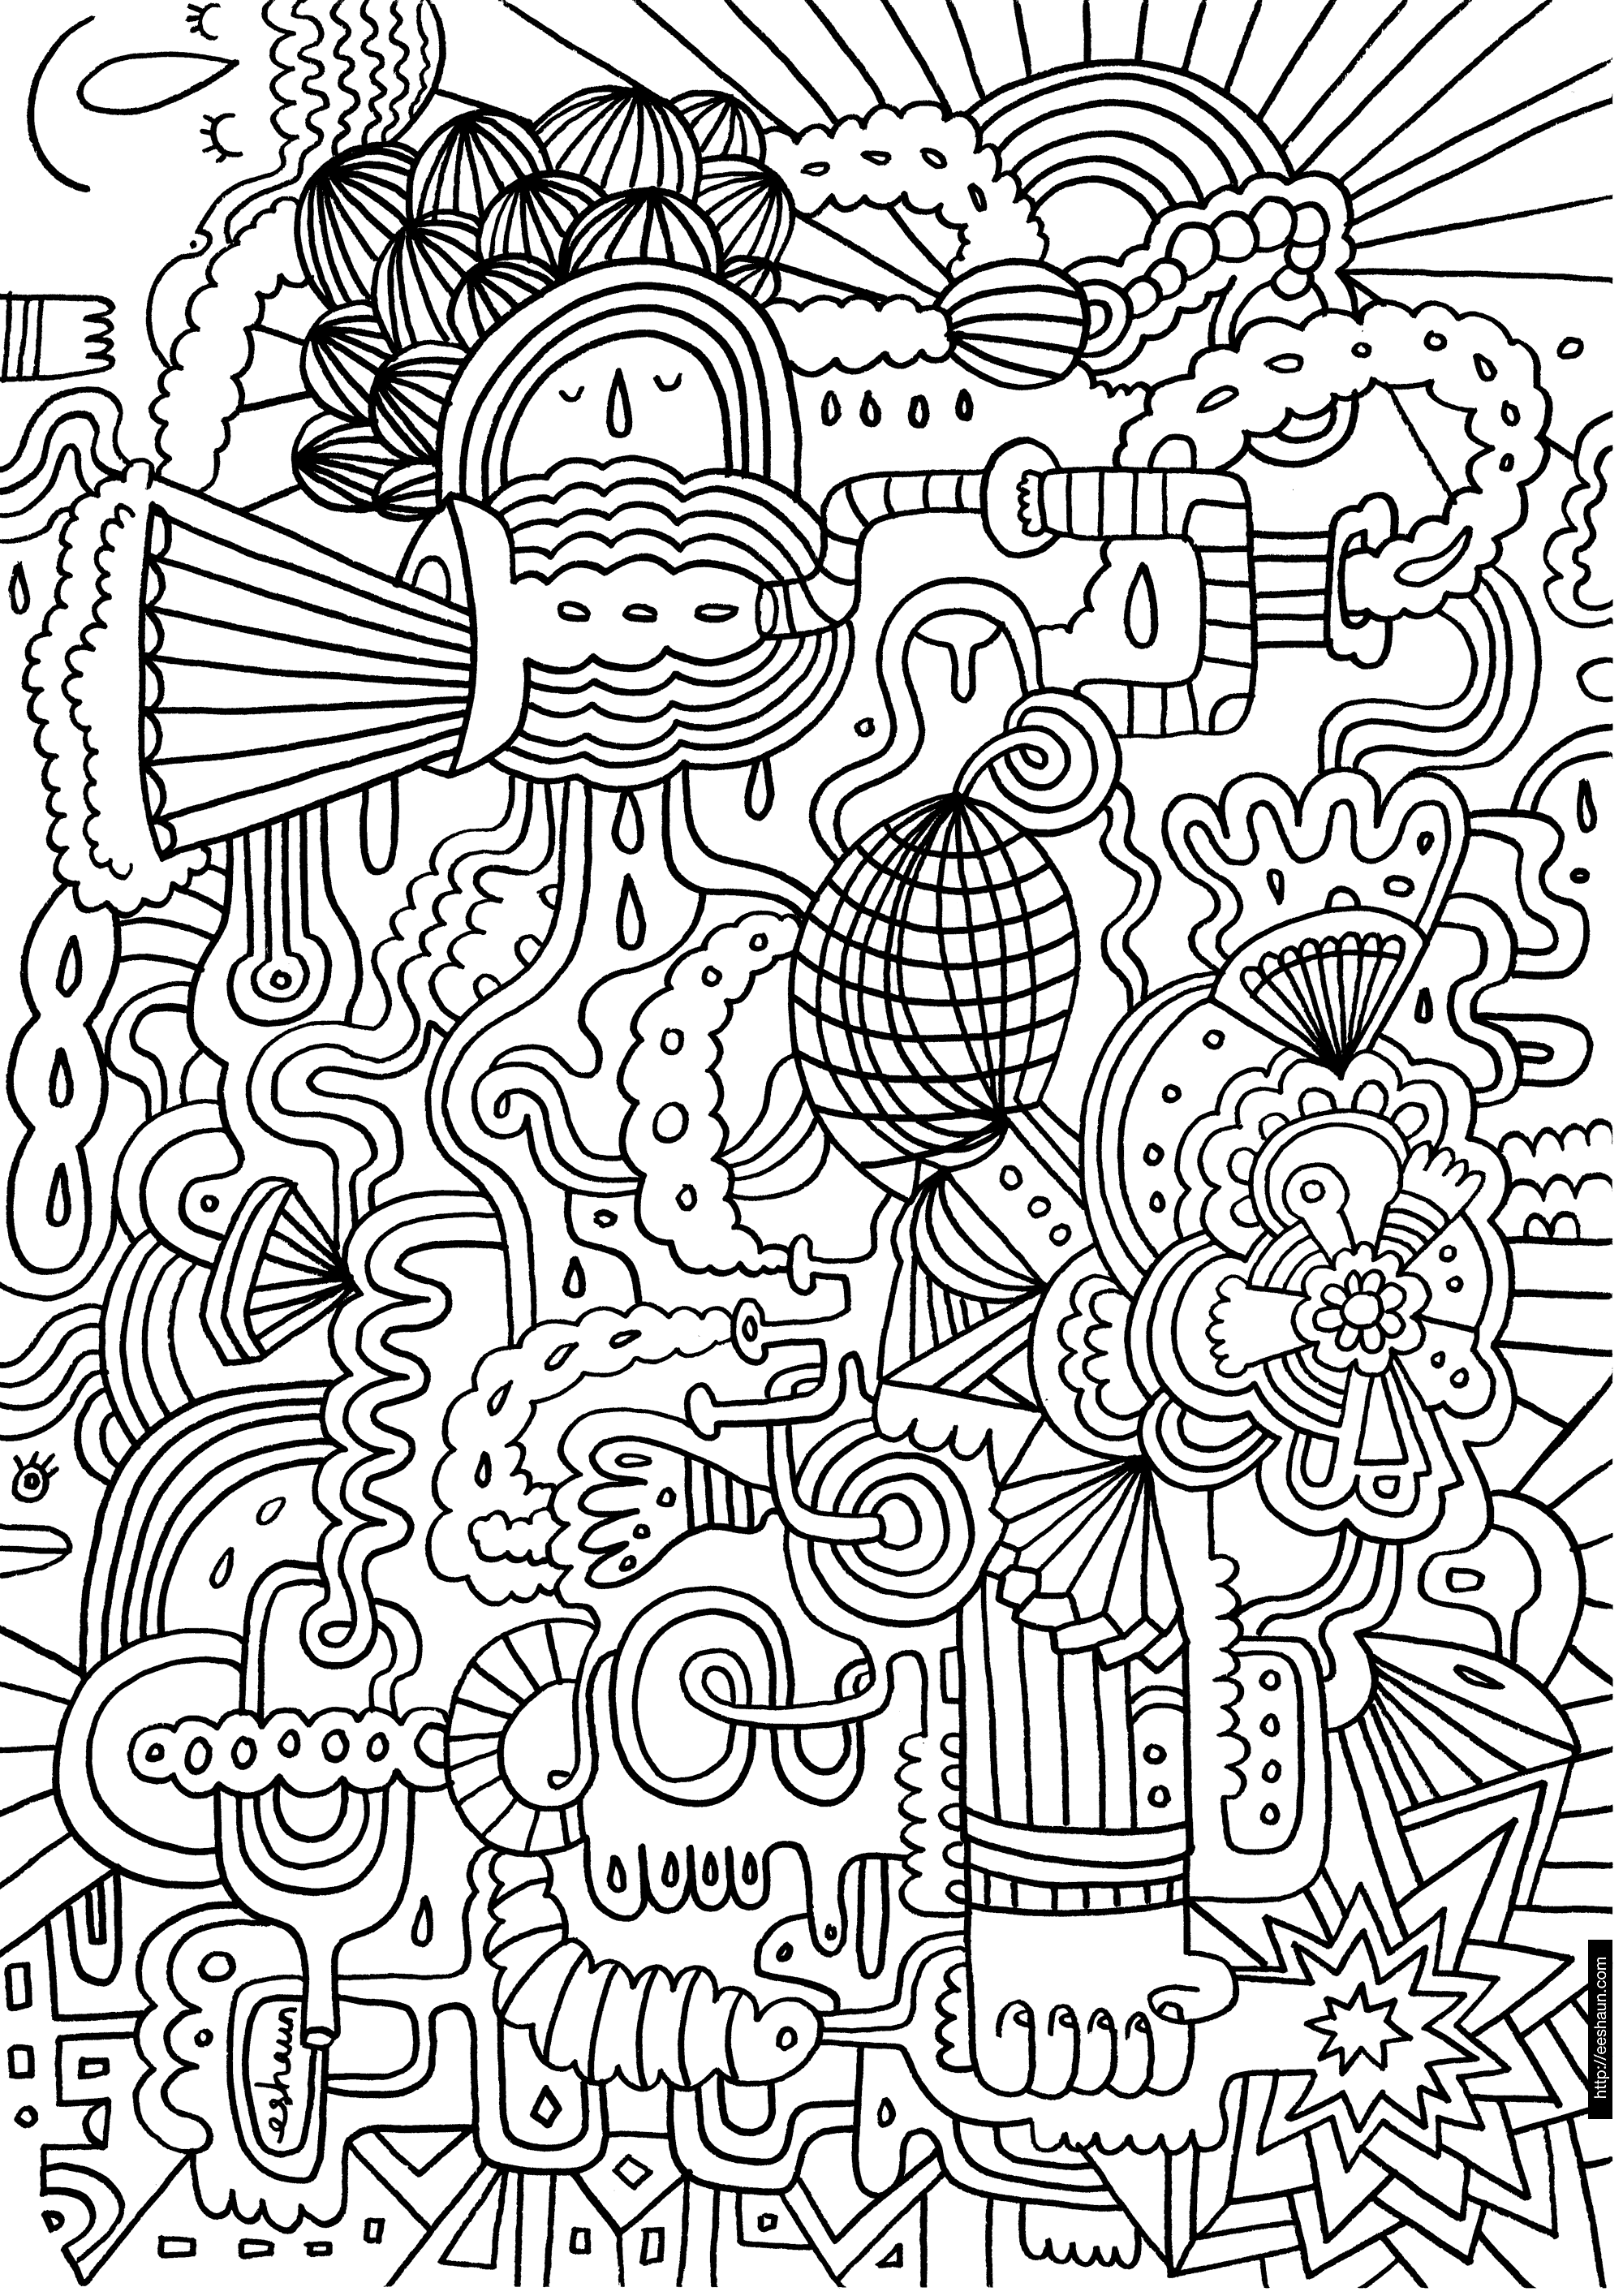 Free coloring pages for adults abstract - Hard Coloring Pages Free Large Images